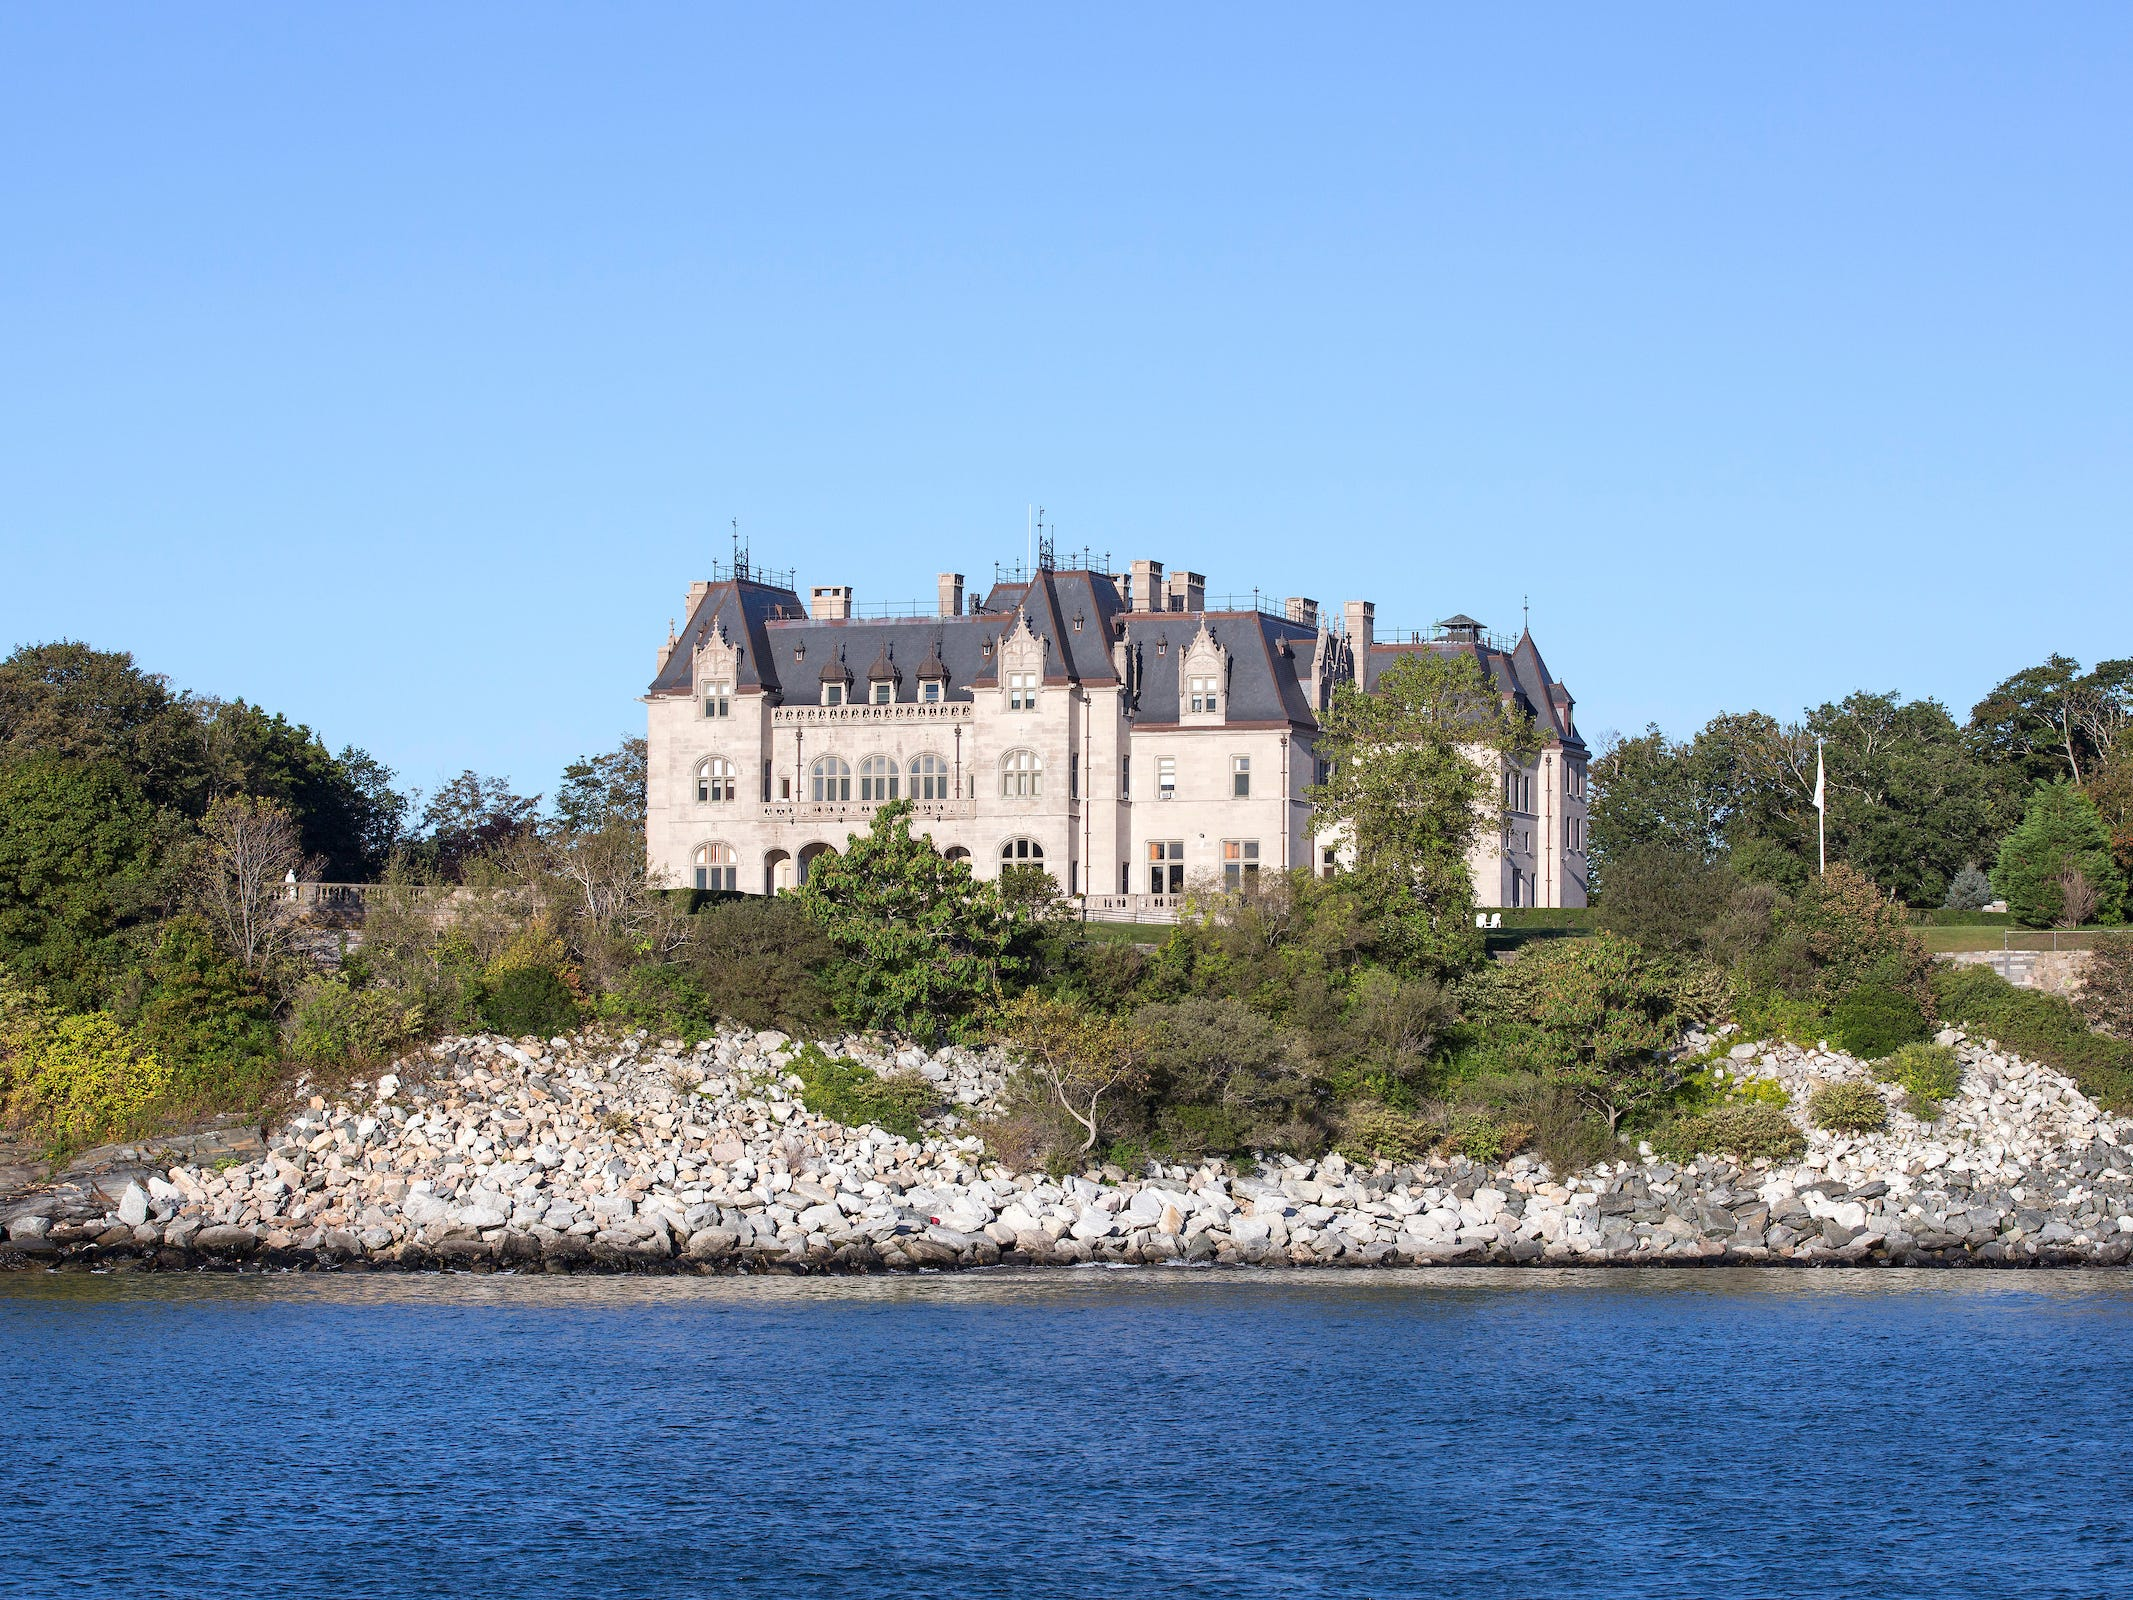 Rhode Island: Situated along historic Newport's famed Cliff Walk, Ochre Court is Salve Regina University's main administration building.